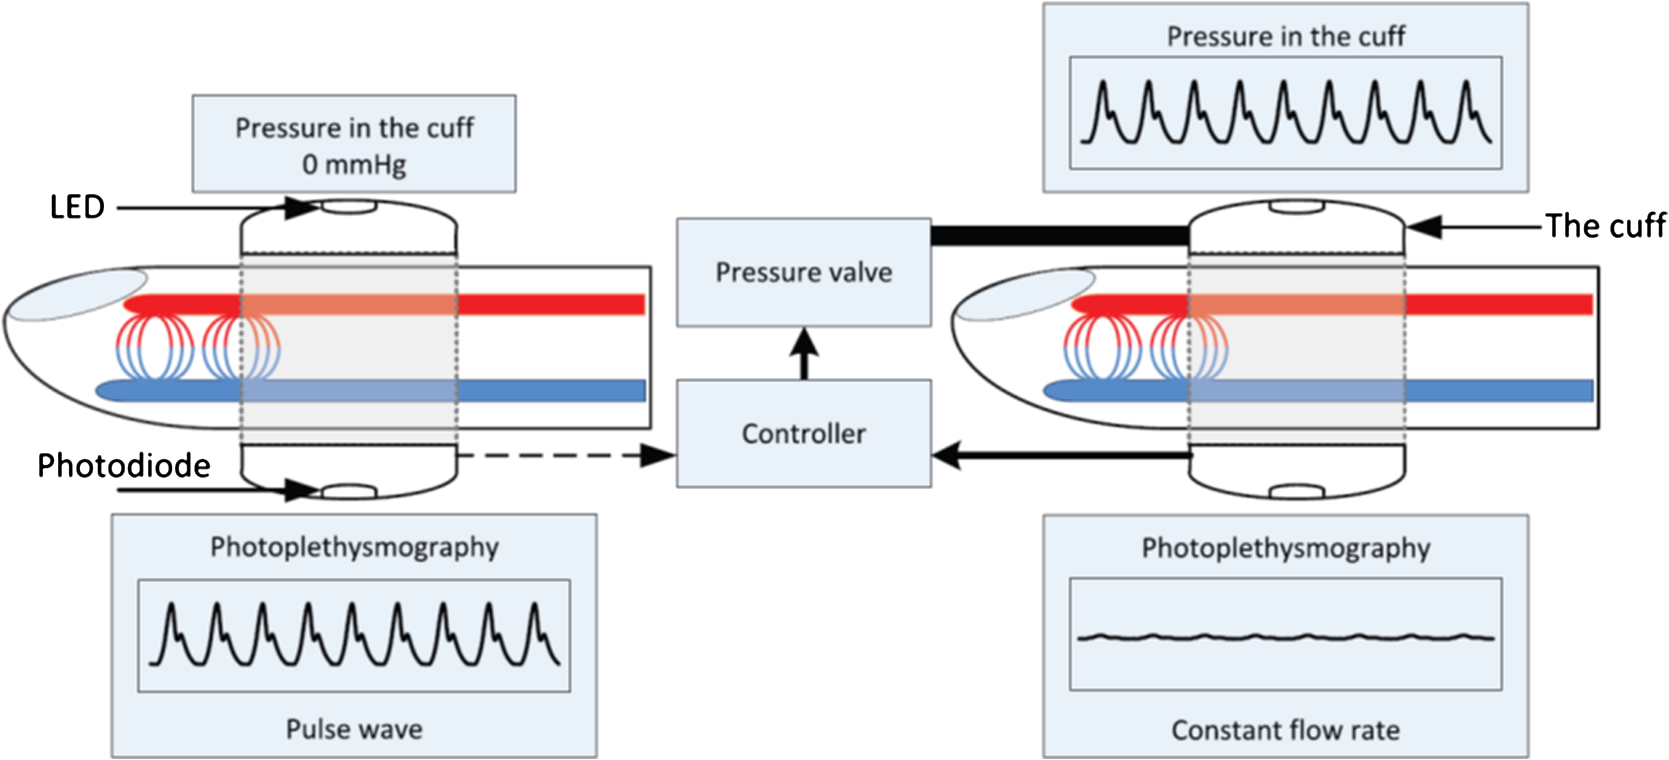 Cerebral Blood Flow And Autoregulation Current Measurement Diagram 88 The Internal Structure Through Heart Flows In Out Of Arterial Compartment Are Same Constant Rate Figure Reproduced From Ref 139 With Permission